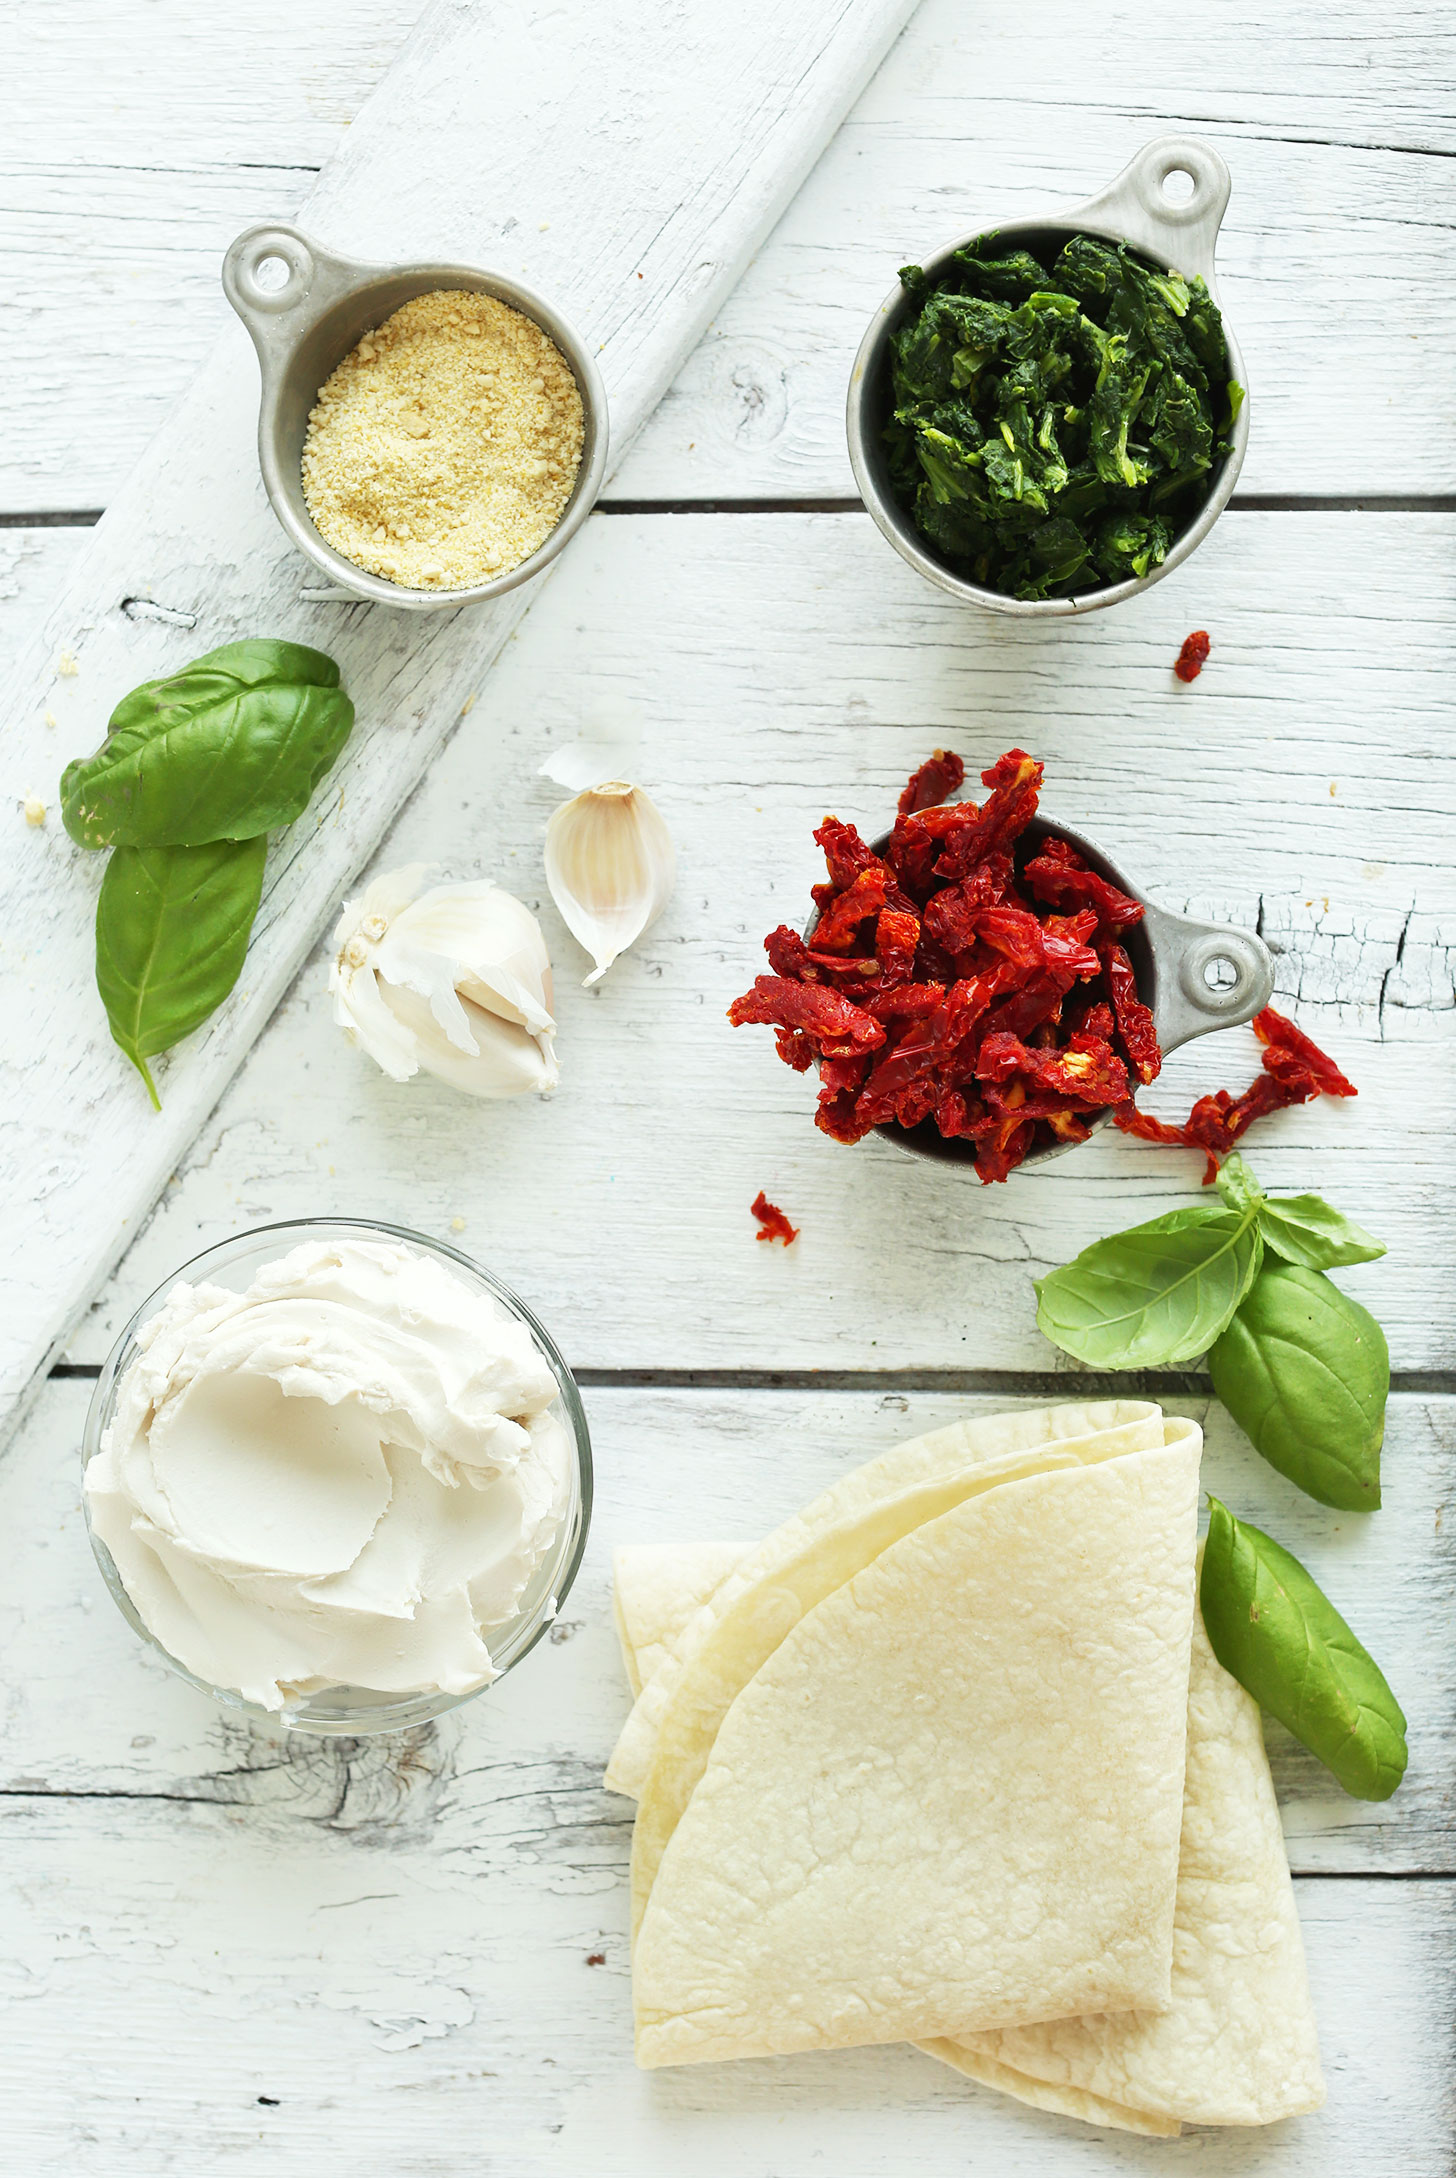 Vegan parmesan cheese, frozen spinach, sun-dried tomatoes, basil, tortillas, garlic, and vegan cream cheese for making a vegan appetizer